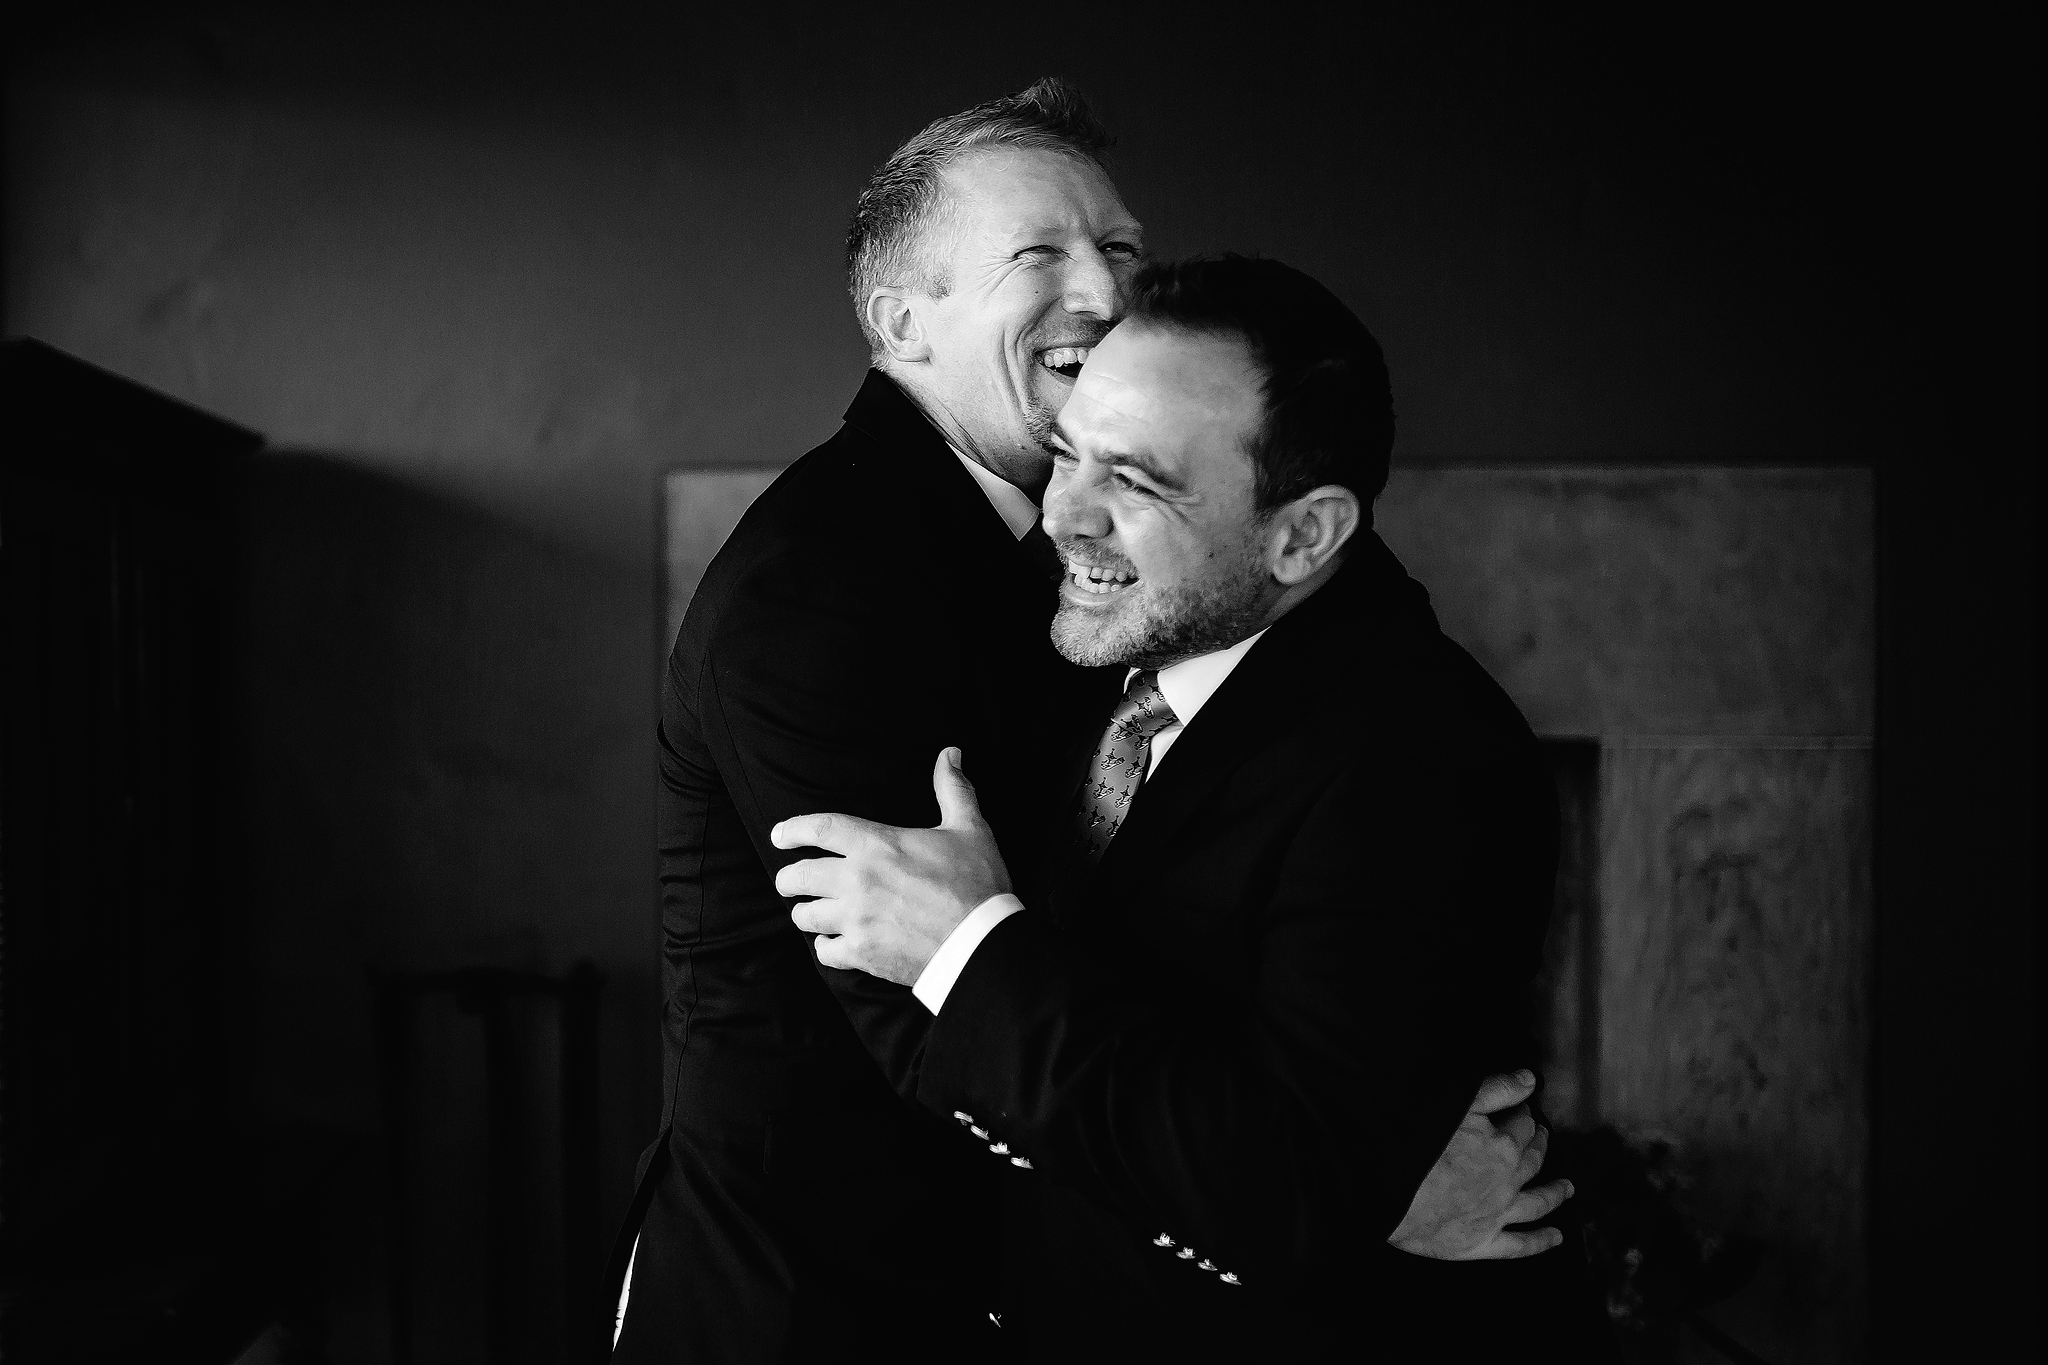 Groom embrace - photo by Ruan Redelinghuys Photography